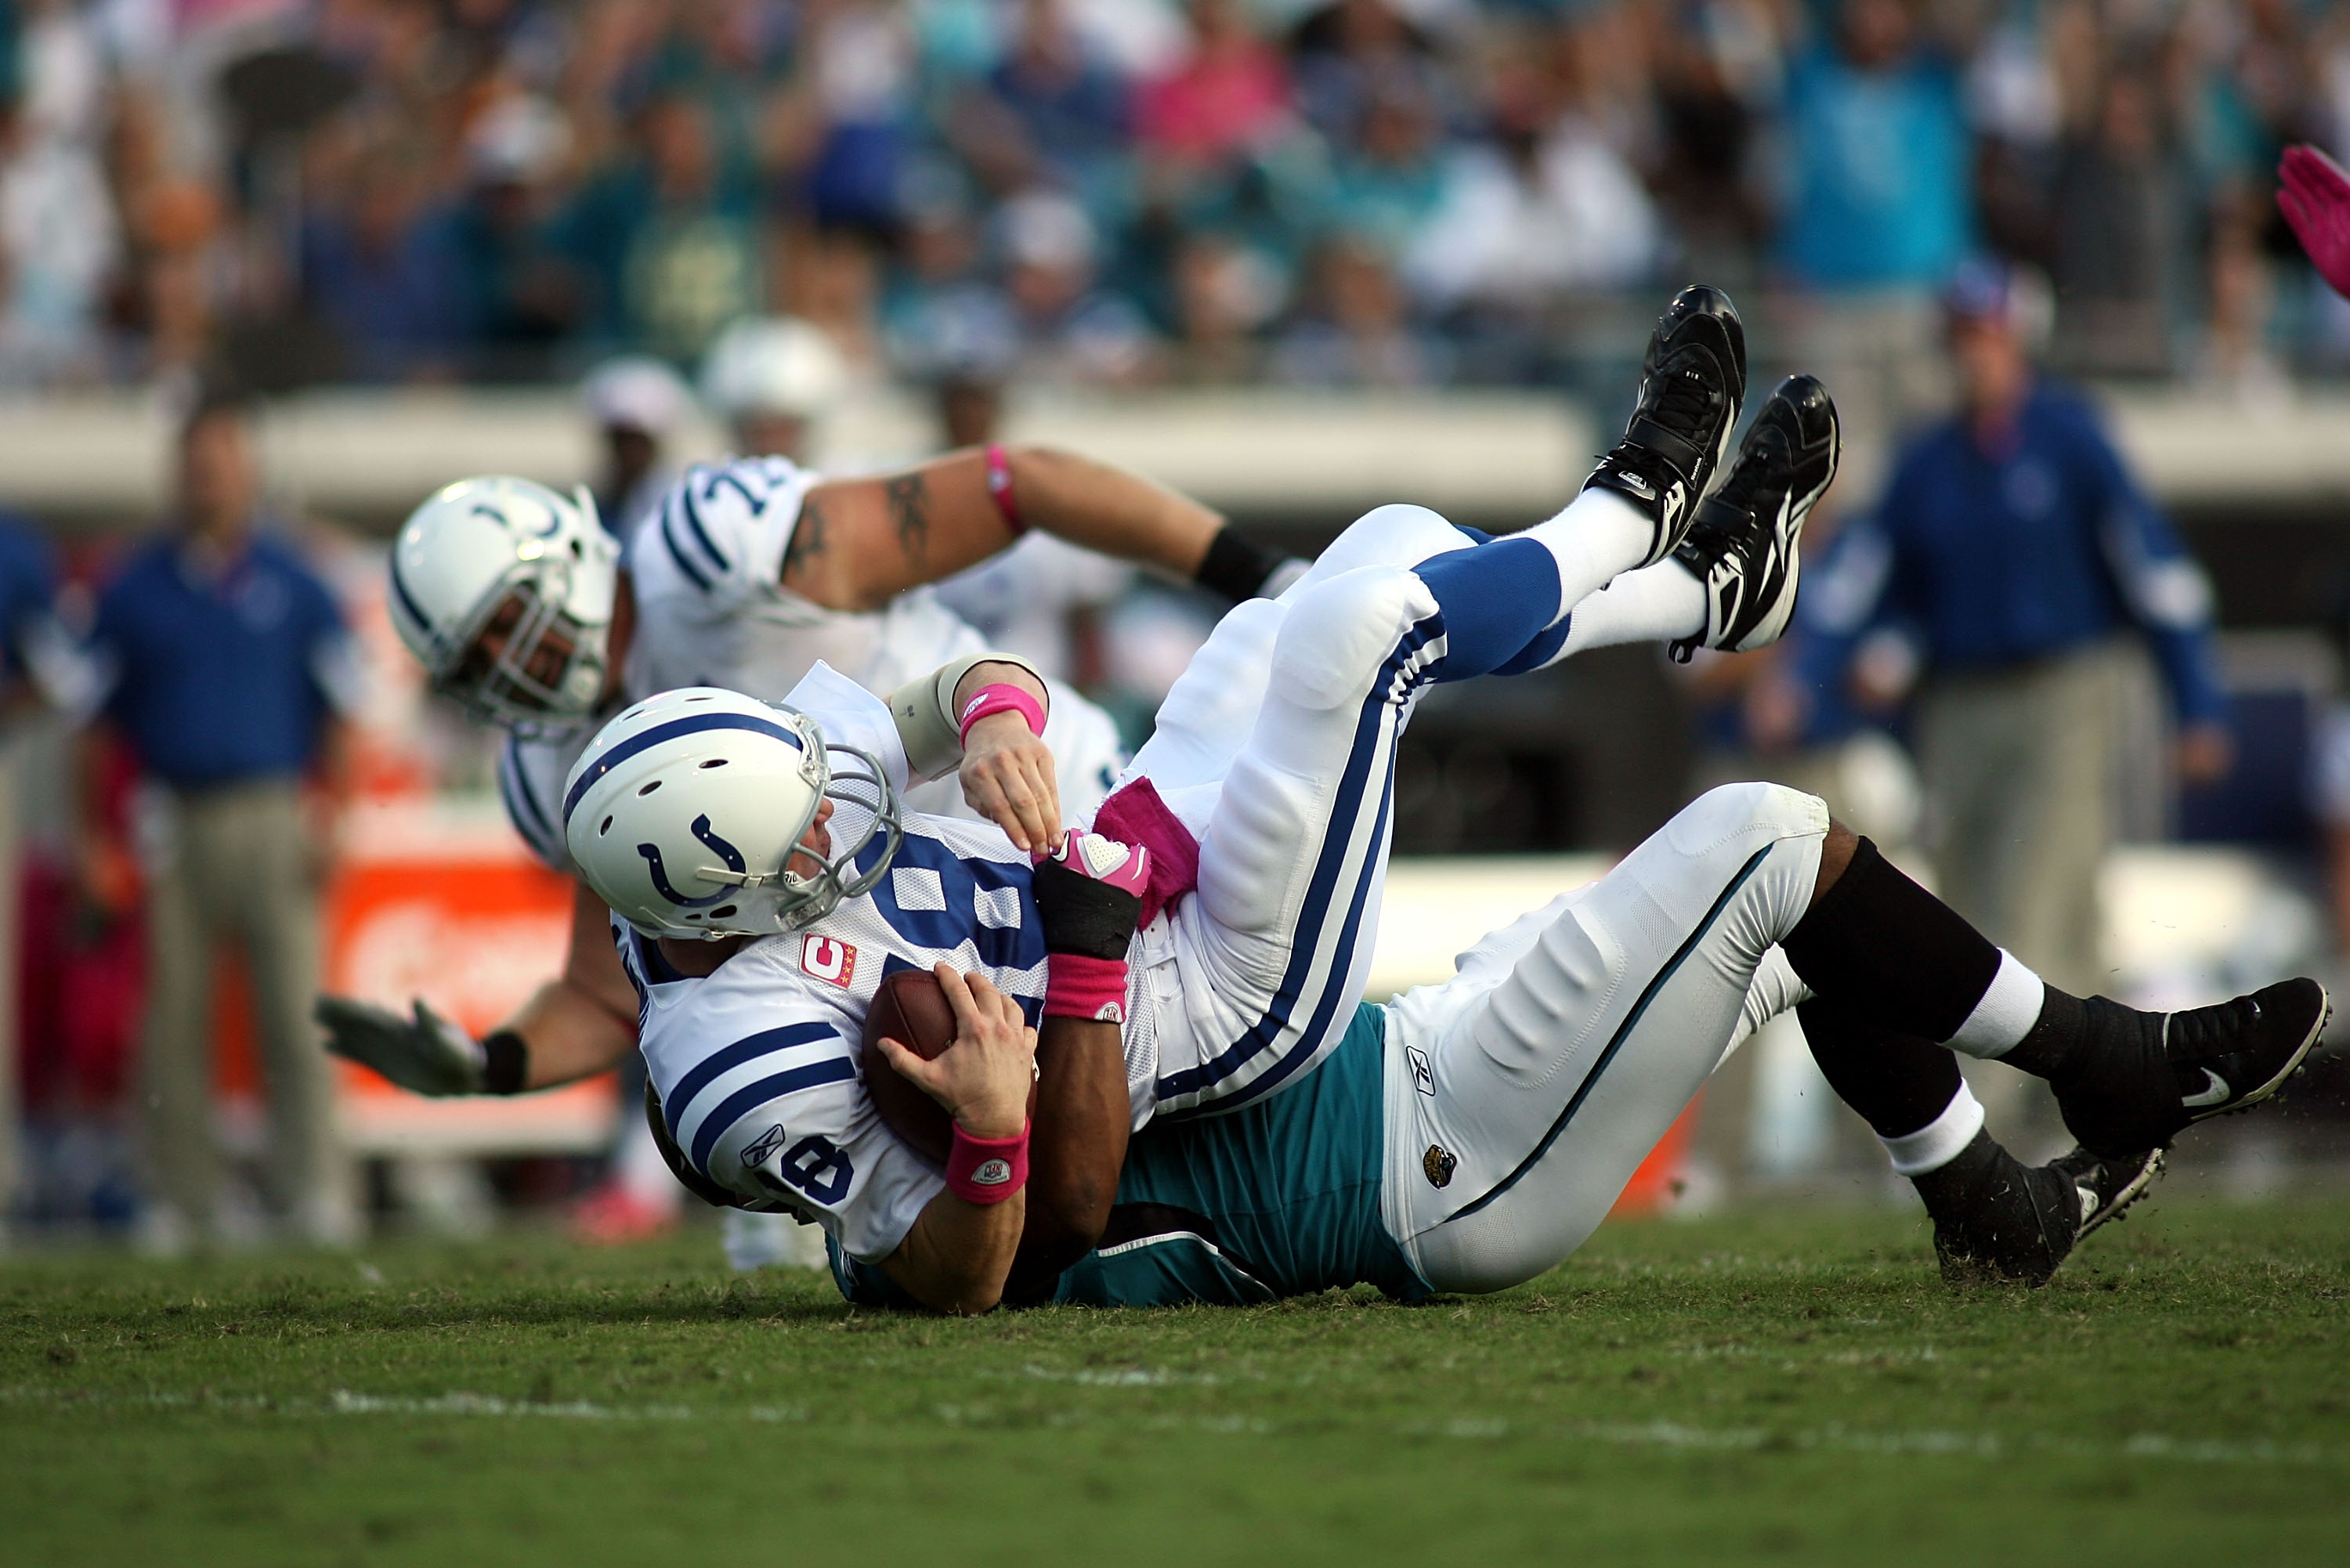 JACKSONVILLE, FL - OCTOBER 03:  Quarterback Peyton Manning #18 of the Indianapolis Colts is sacked by Lineman Jeremy Mincey #94 of the Jacksonville Jaguars at EverBank Field on October 3, 2010 in Jacksonville, Florida. The Jaguars won 31-28.  (Photo by Ma